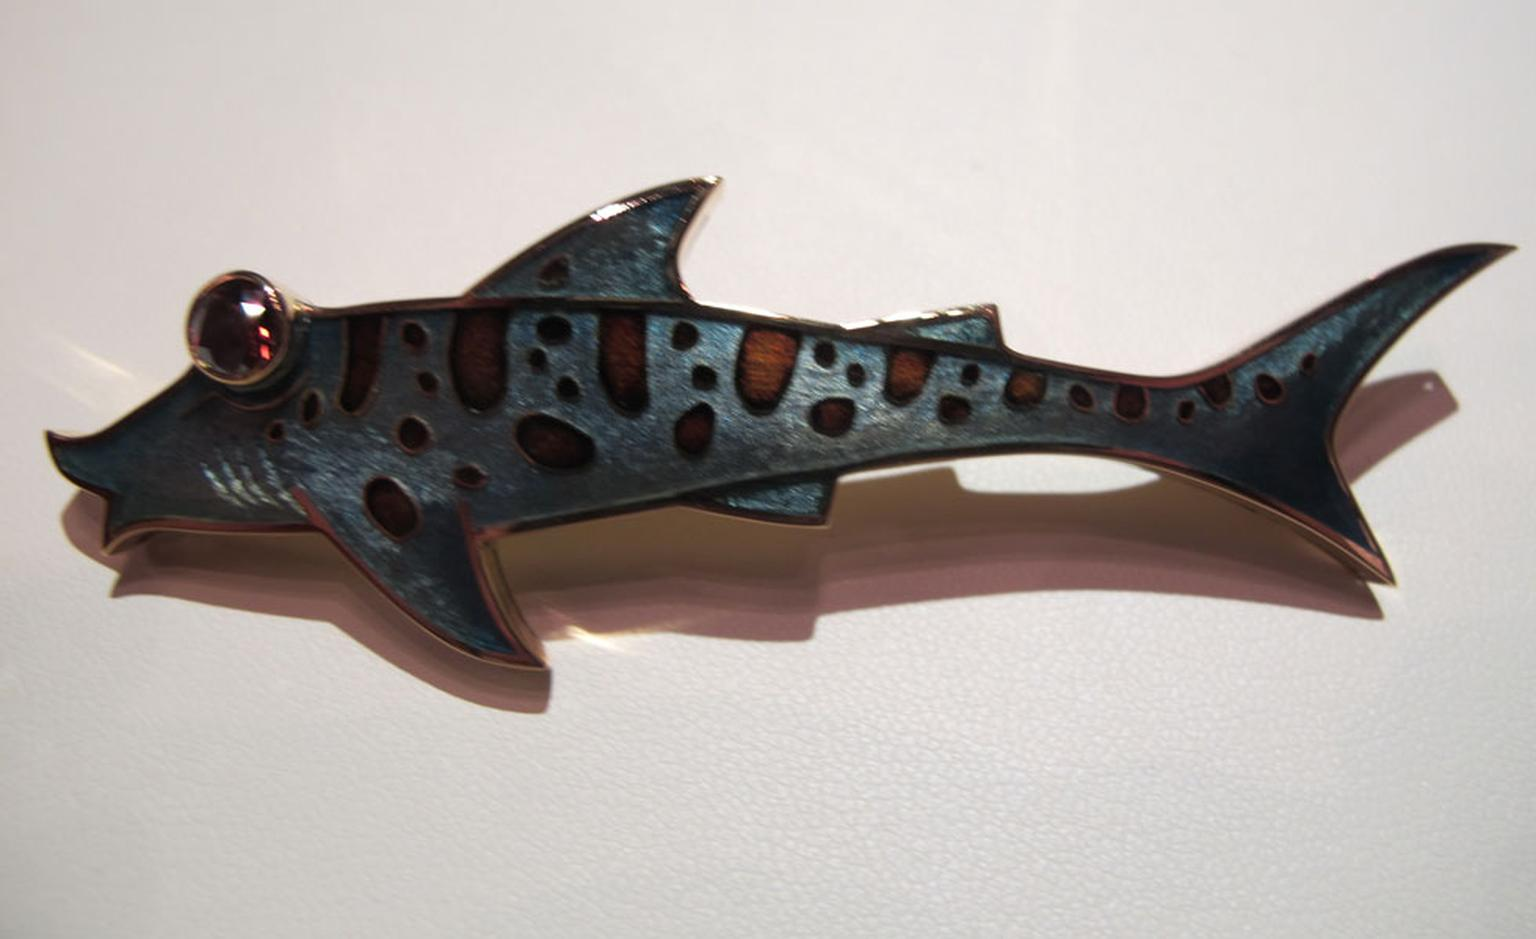 Fred Leopard Shark brooch in enamel with brown diamond eye. Something for his Christmas stocking perhaps? £8,200